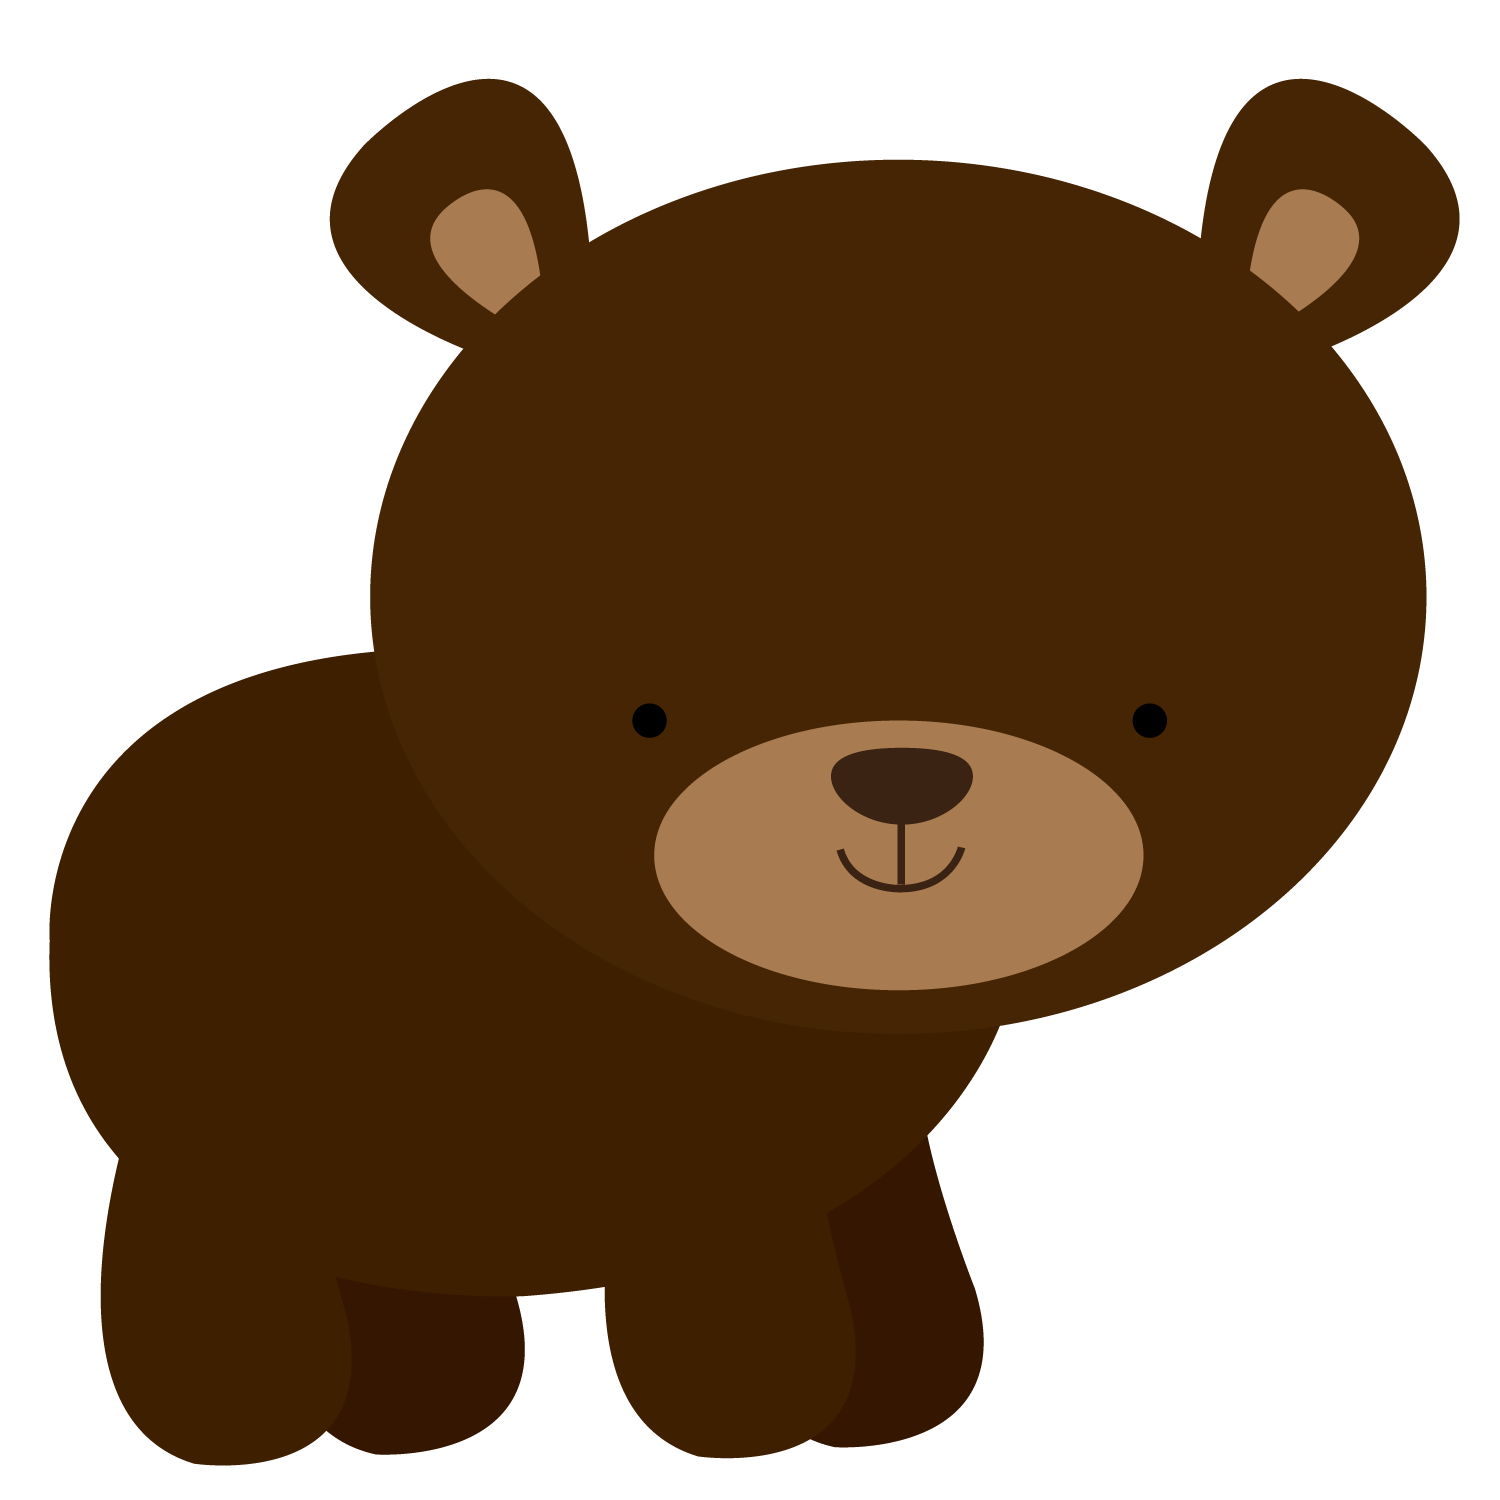 Bear png clipart. Floresta e safari minus